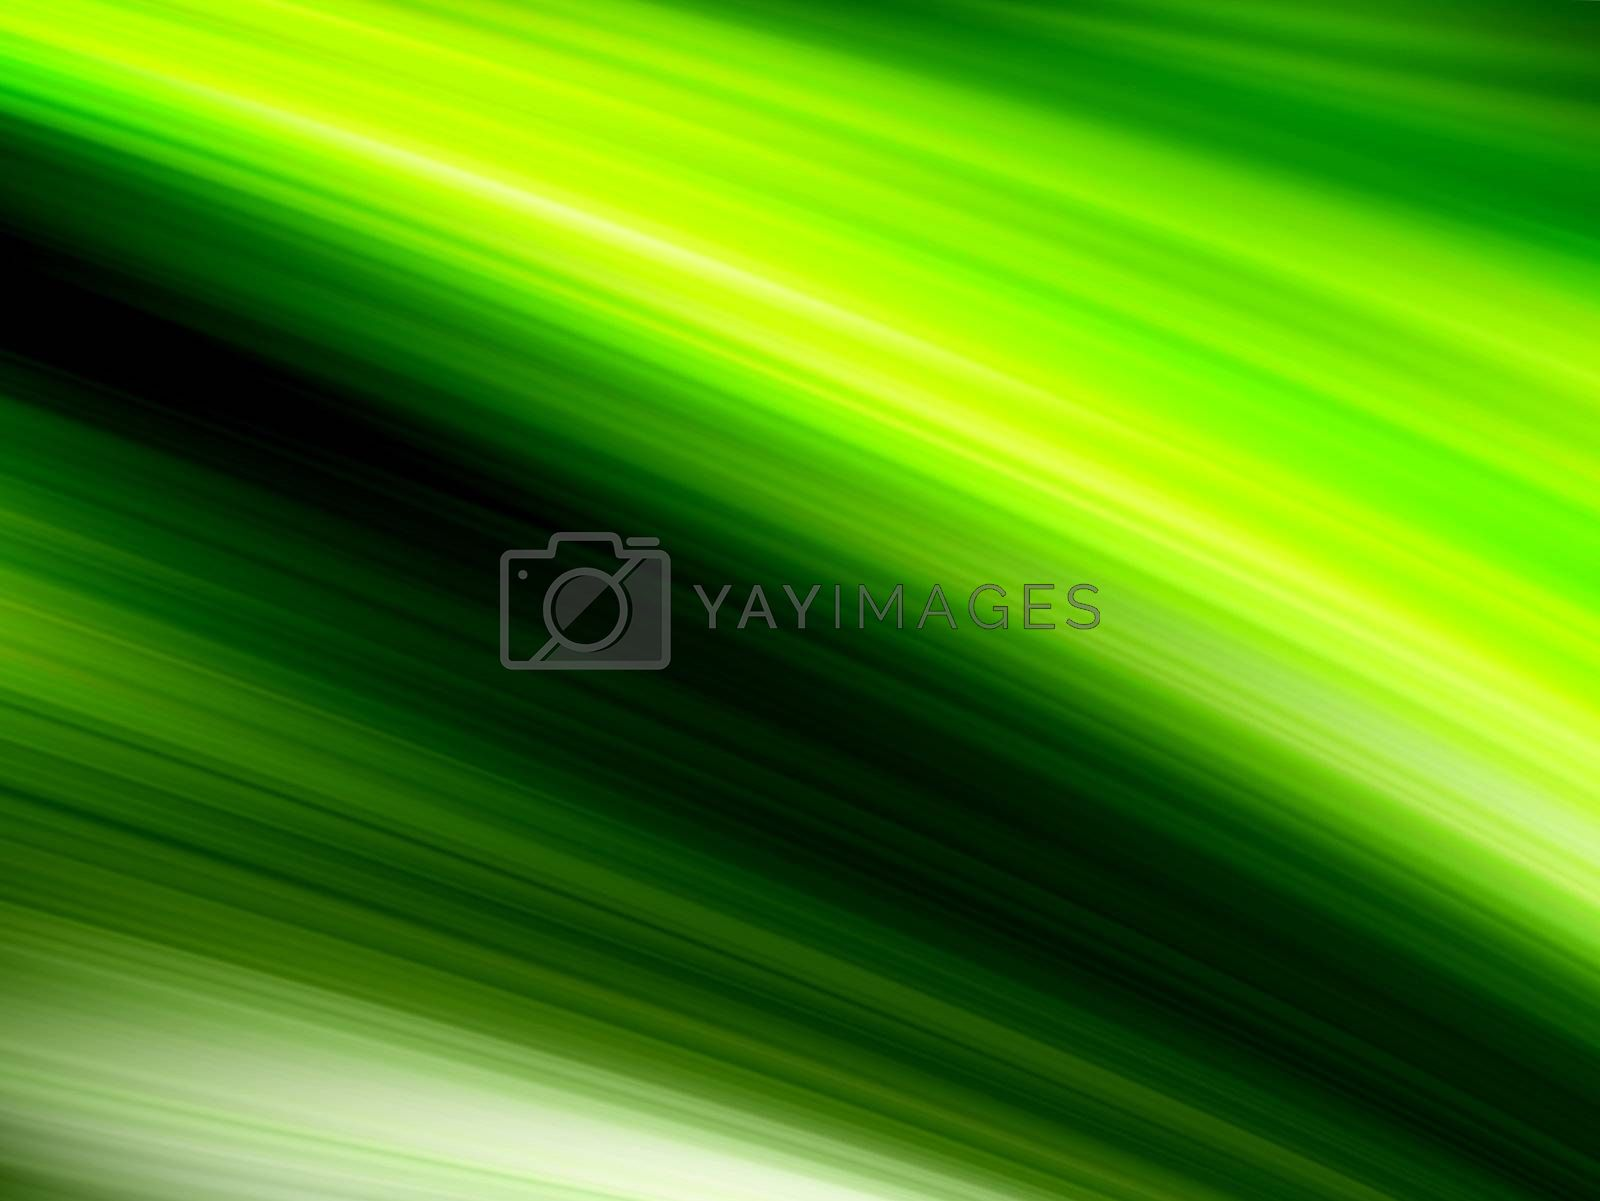 green dynamic texture. contrast and vibrant colors